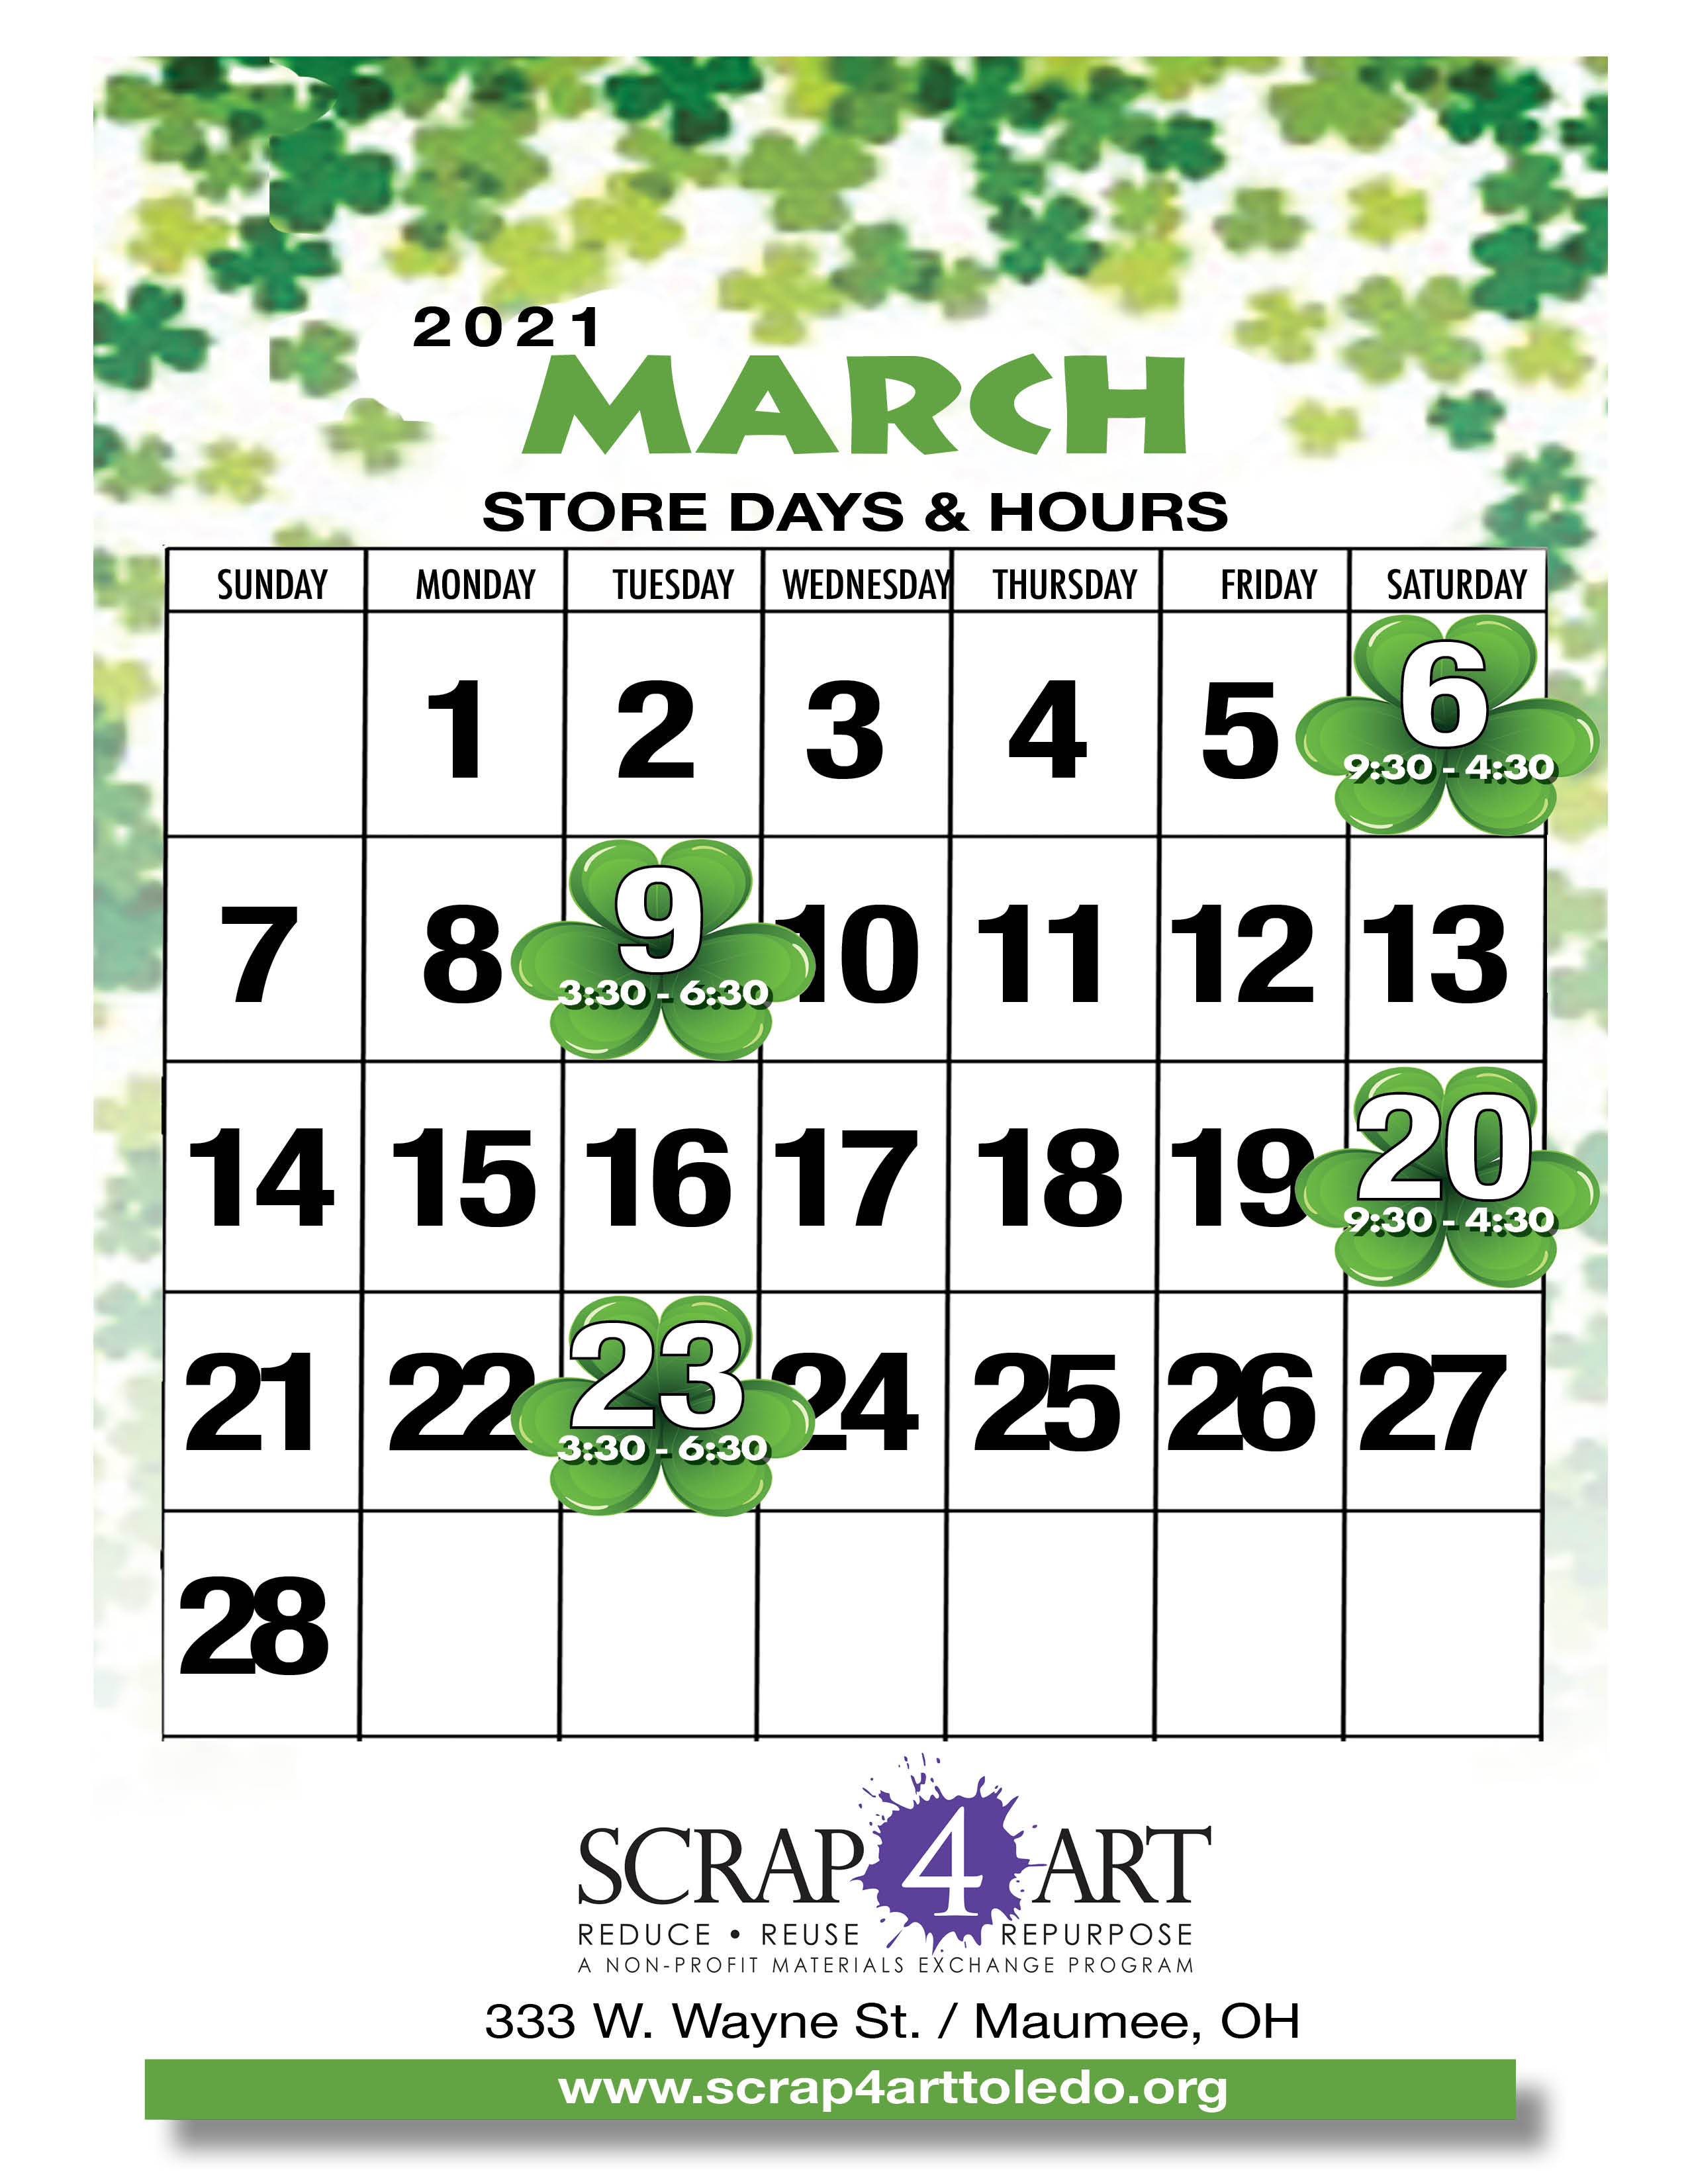 March Store Hours